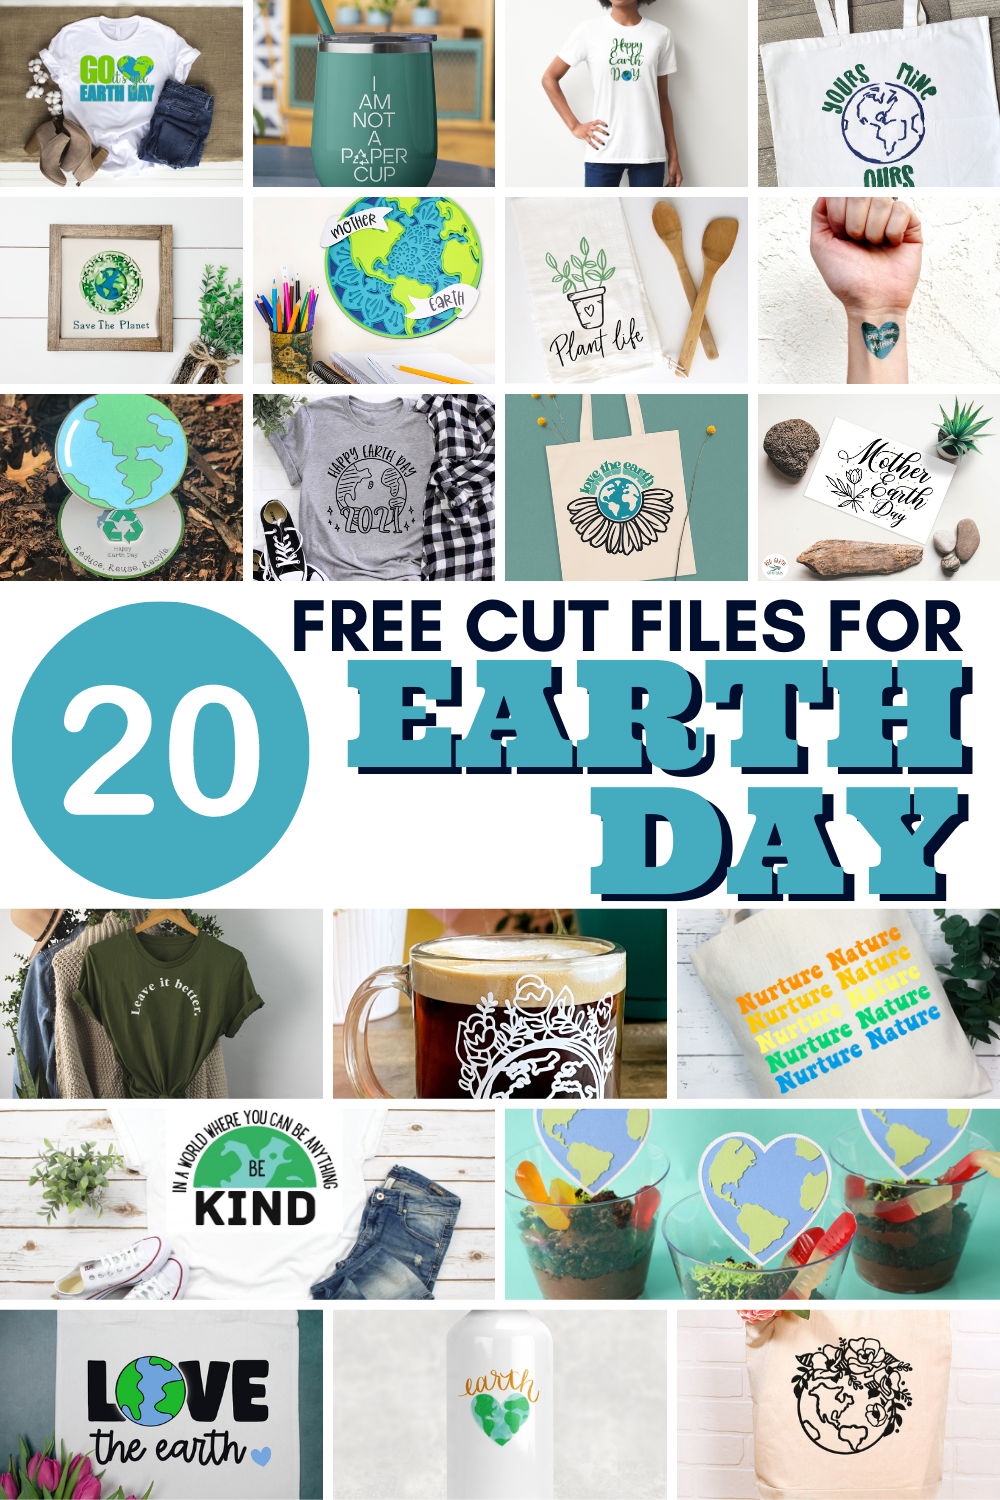 Earth Day SVG file, free earth svg file, floral earth SVG file, Earth SVG file, floral earth SVG file, free SVG file, free files for Cricut, free SVG files for silhouette